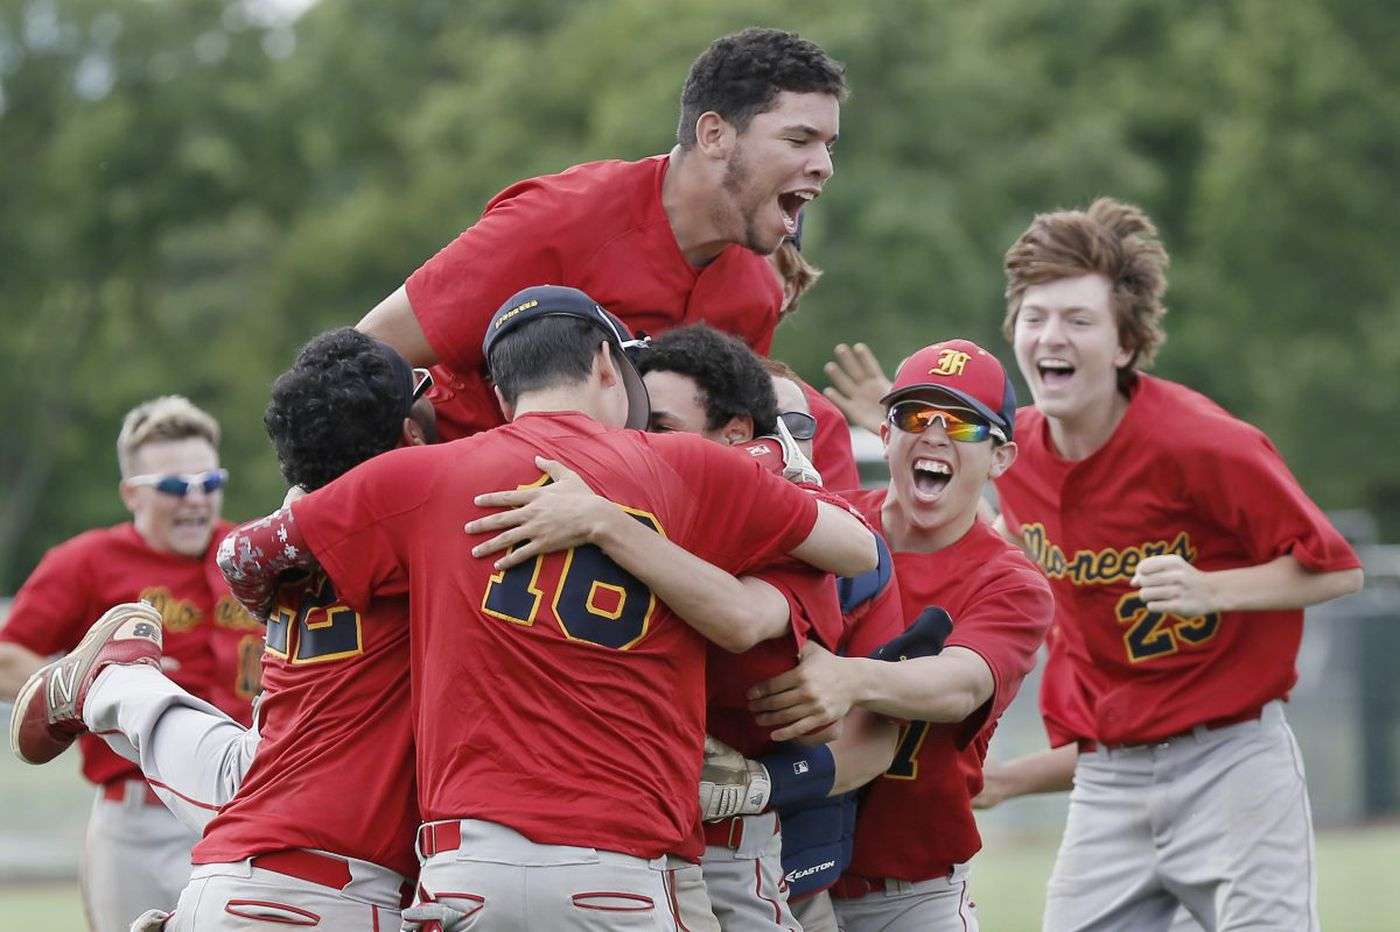 Frankford edges Central to repeat as Public League baseball champion